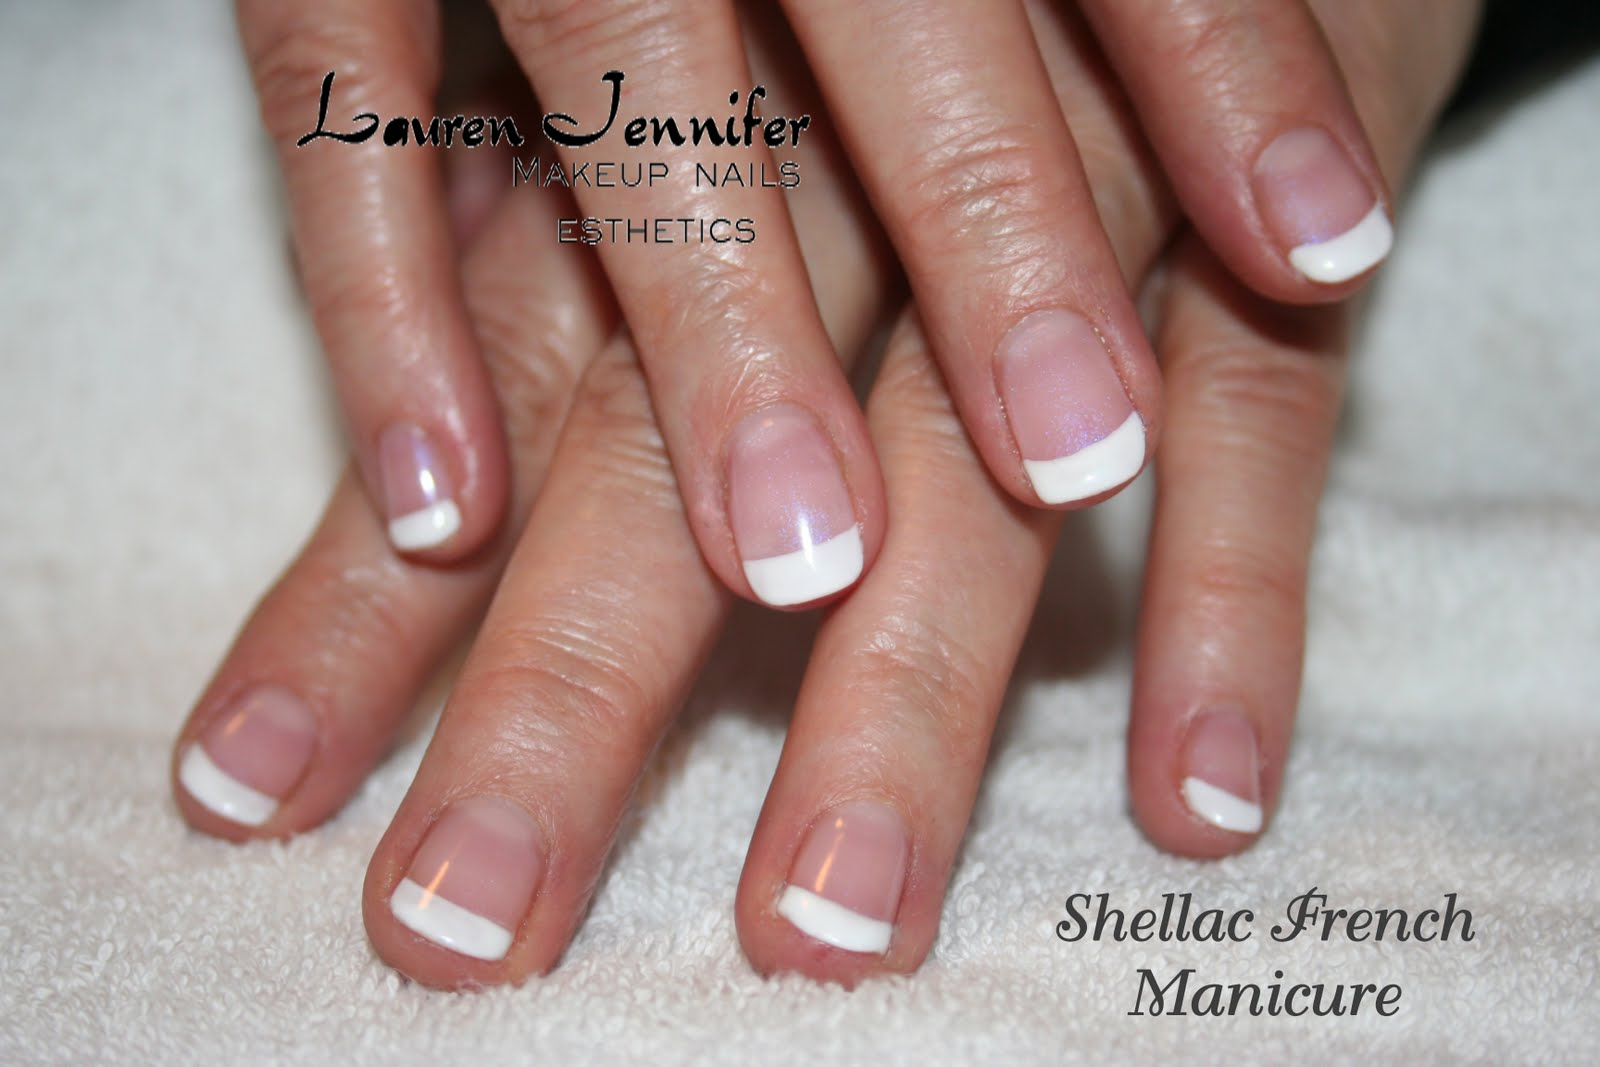 Shellac Manicure on Natural Nails.